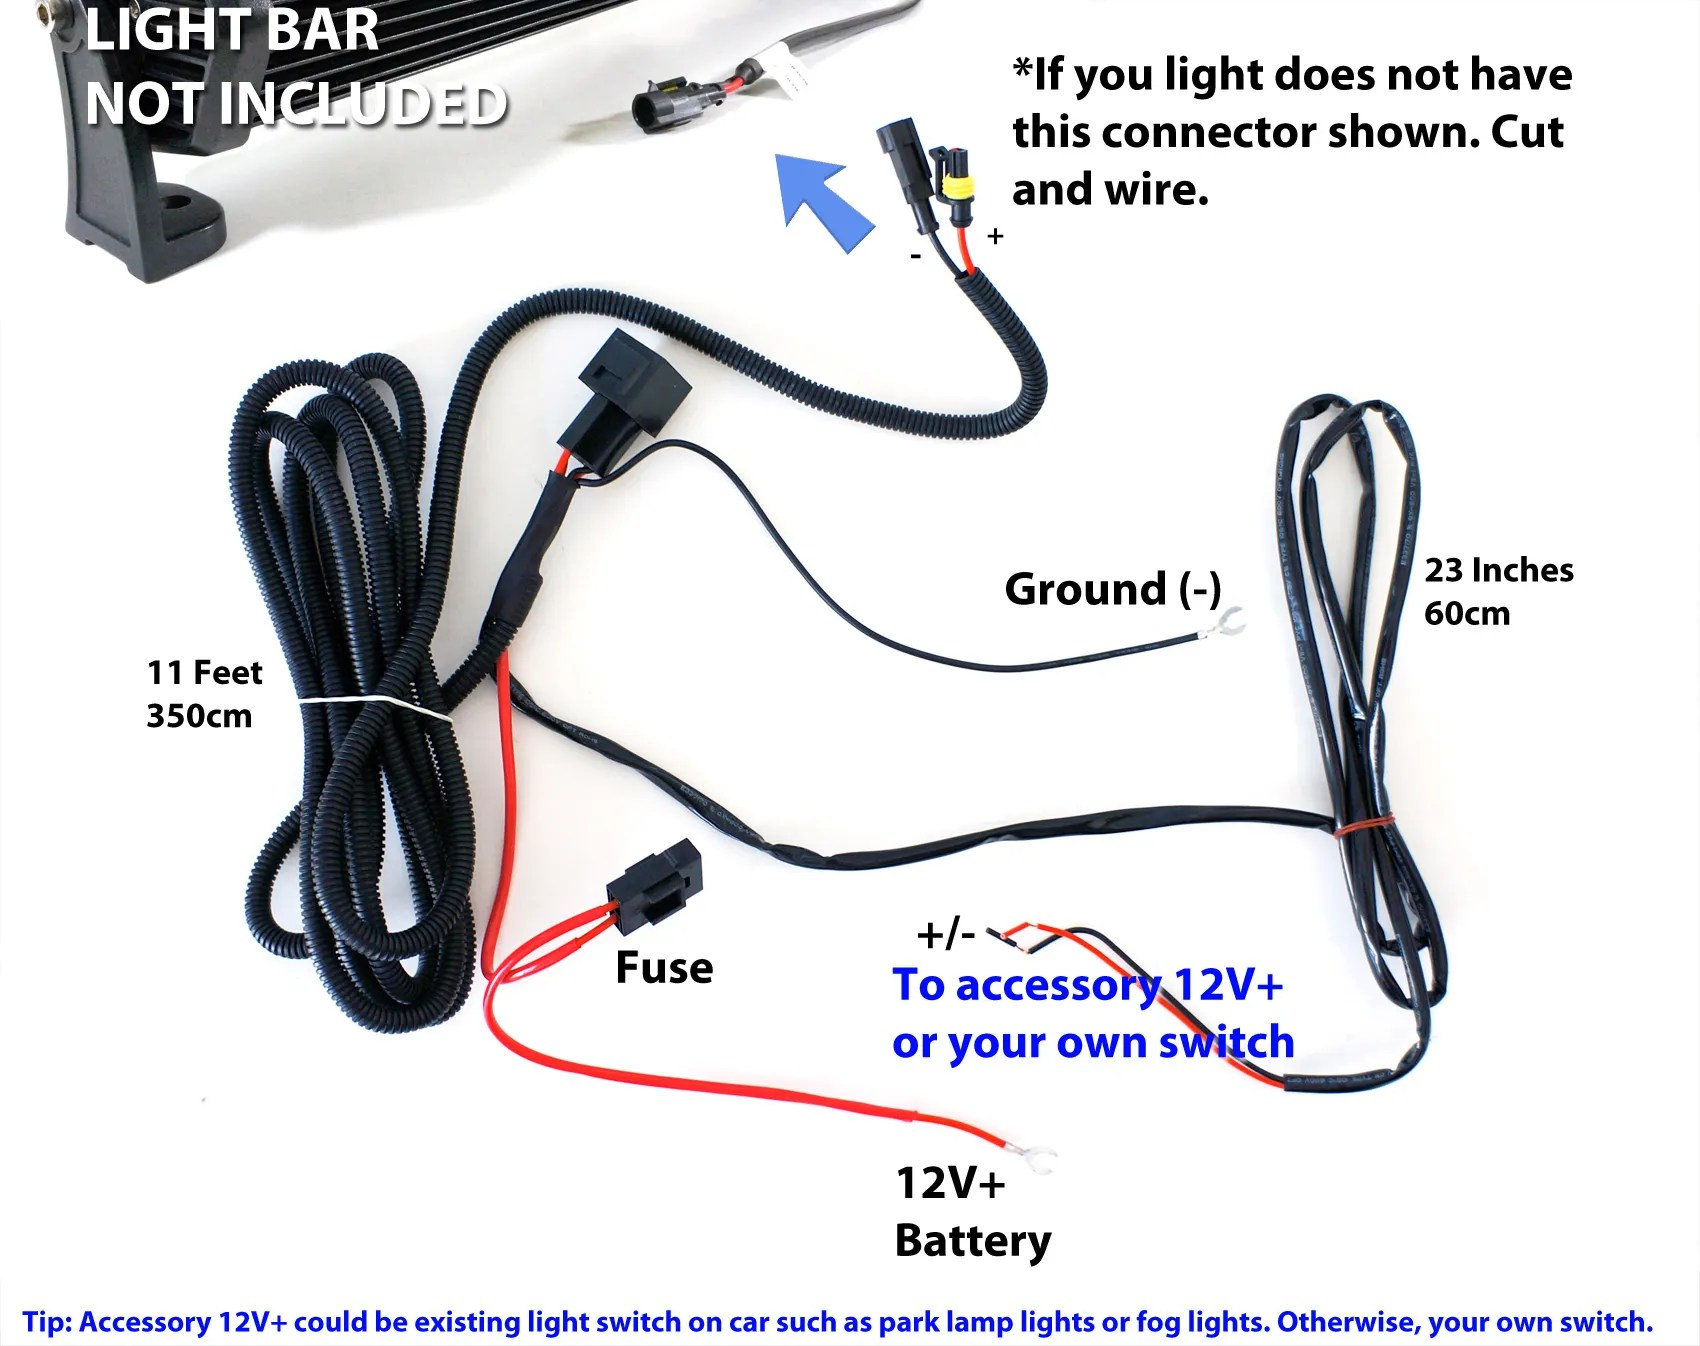 hight resolution of universal wiring relay harness switch for 36w 72w led light bars ebays www ledheadlight net images